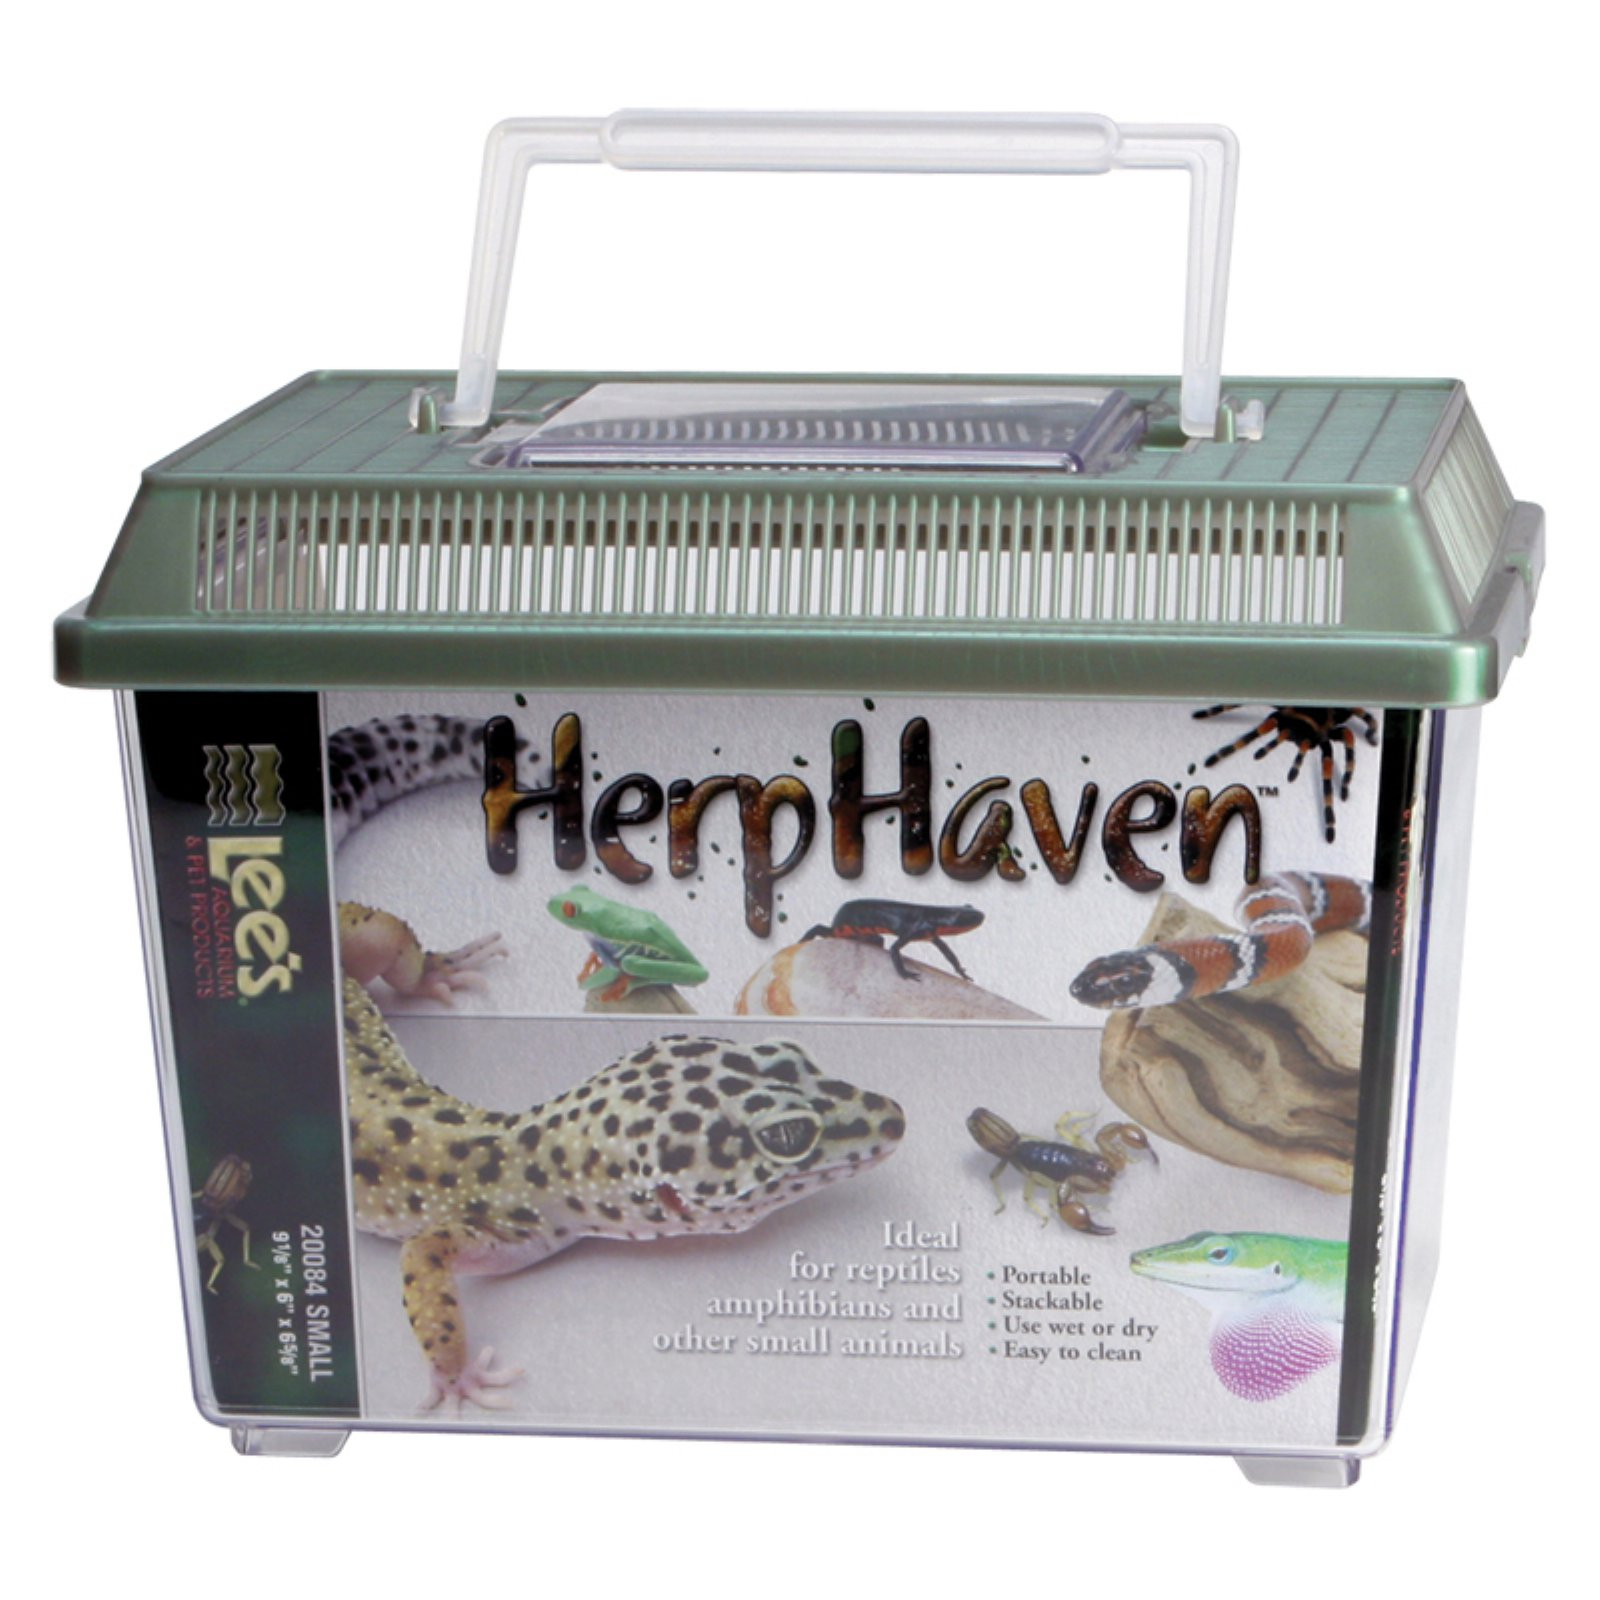 Lee's Aquarium HerpHaven Rectangle Reptile Carrier